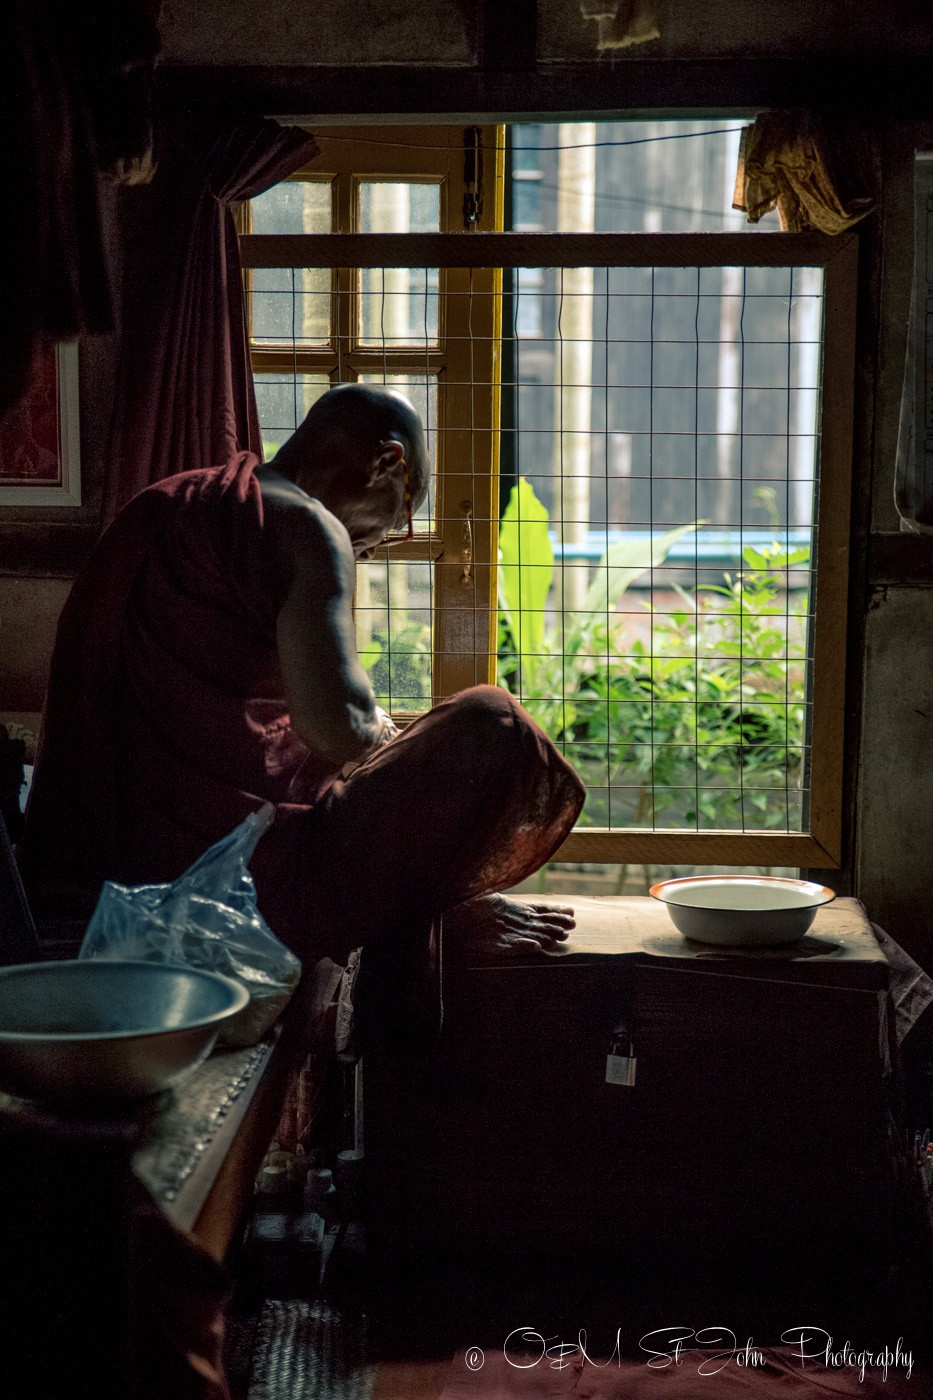 Monk studying in his living quarters at a monastery in Yangon, Myanmar